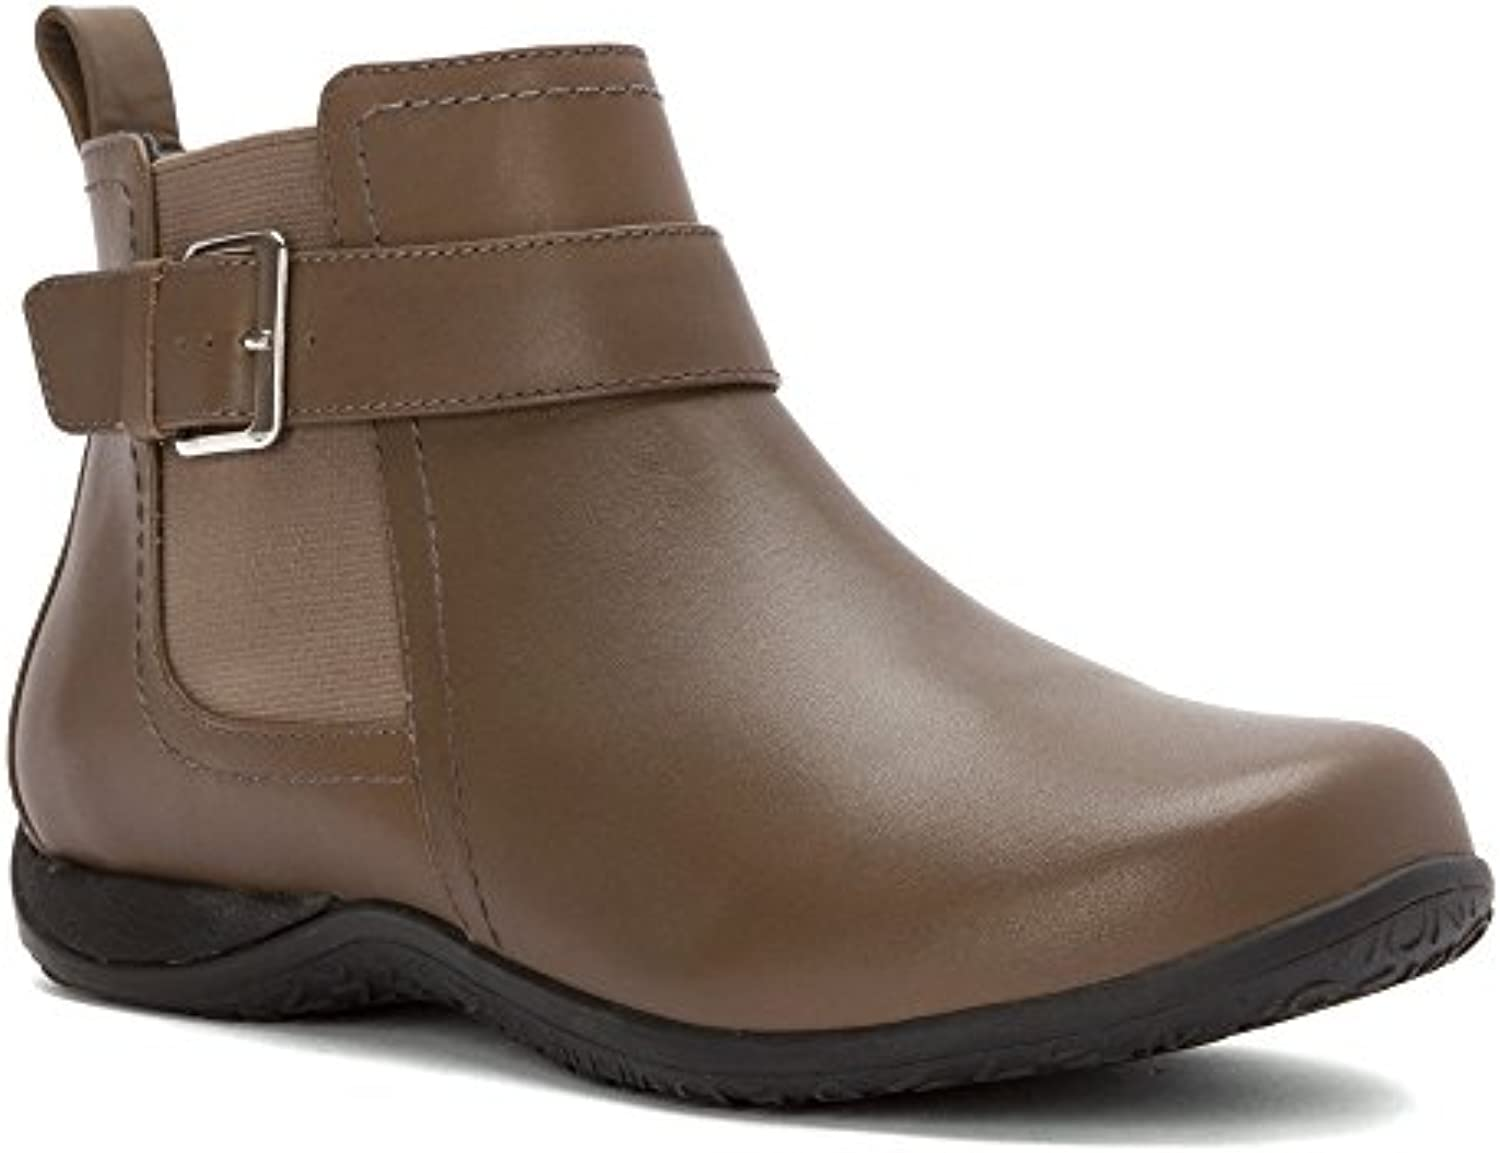 Vionic Adrie Womens Casual Ankle Boot Taupe - 10